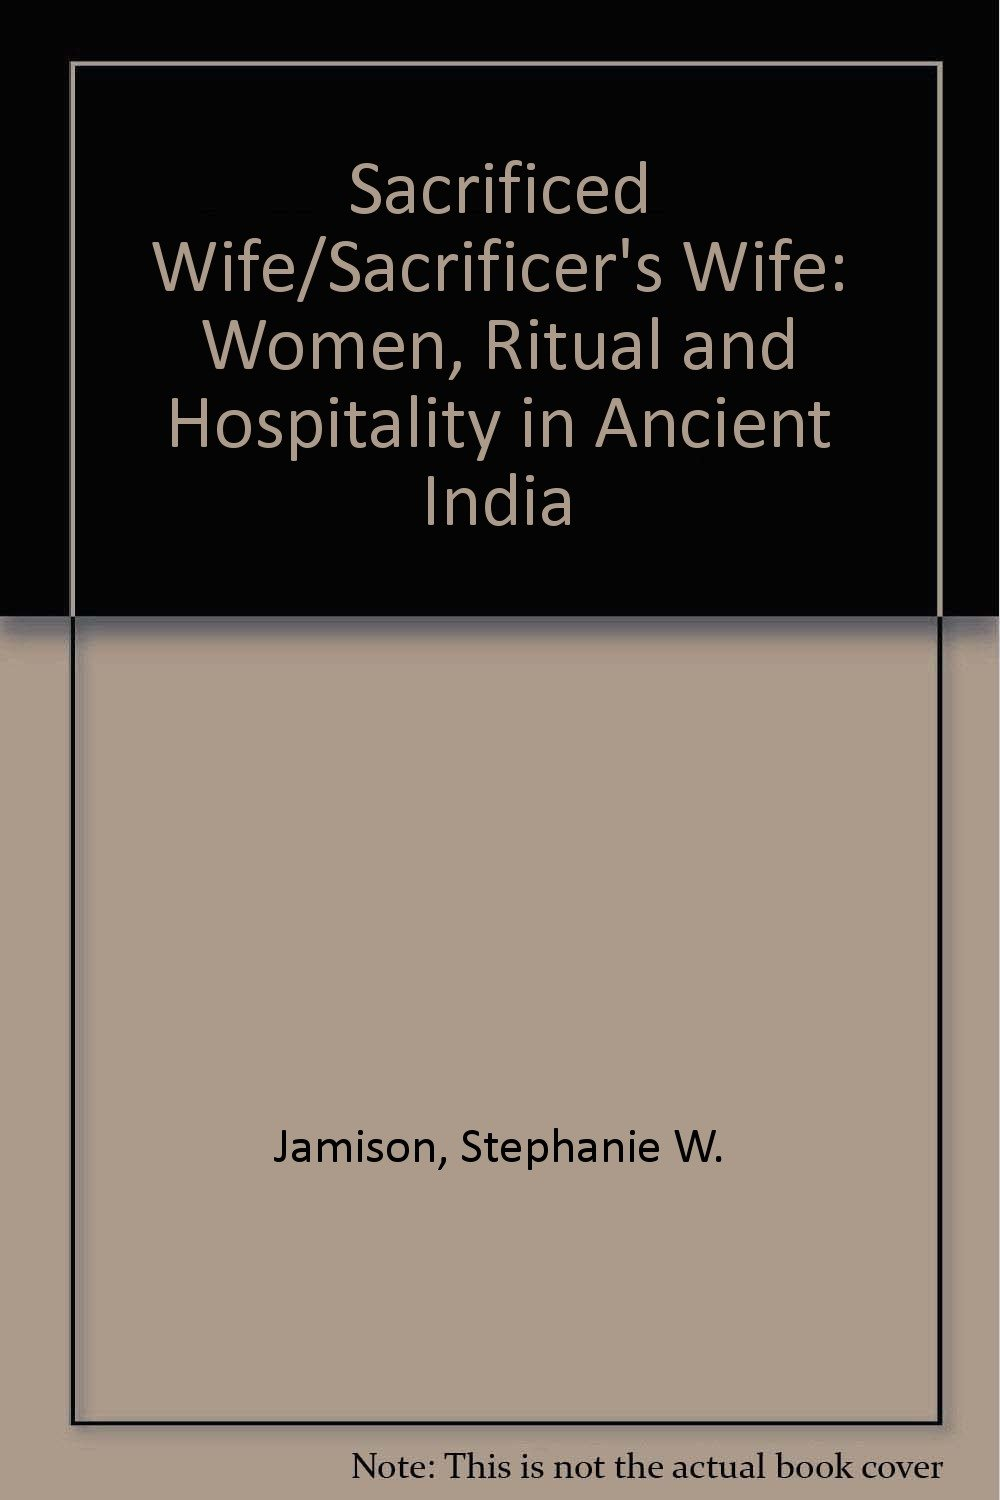 Sacrificed Wife/Sacrificer's Wife: Women, Ritual, and Hospitality in Ancient India